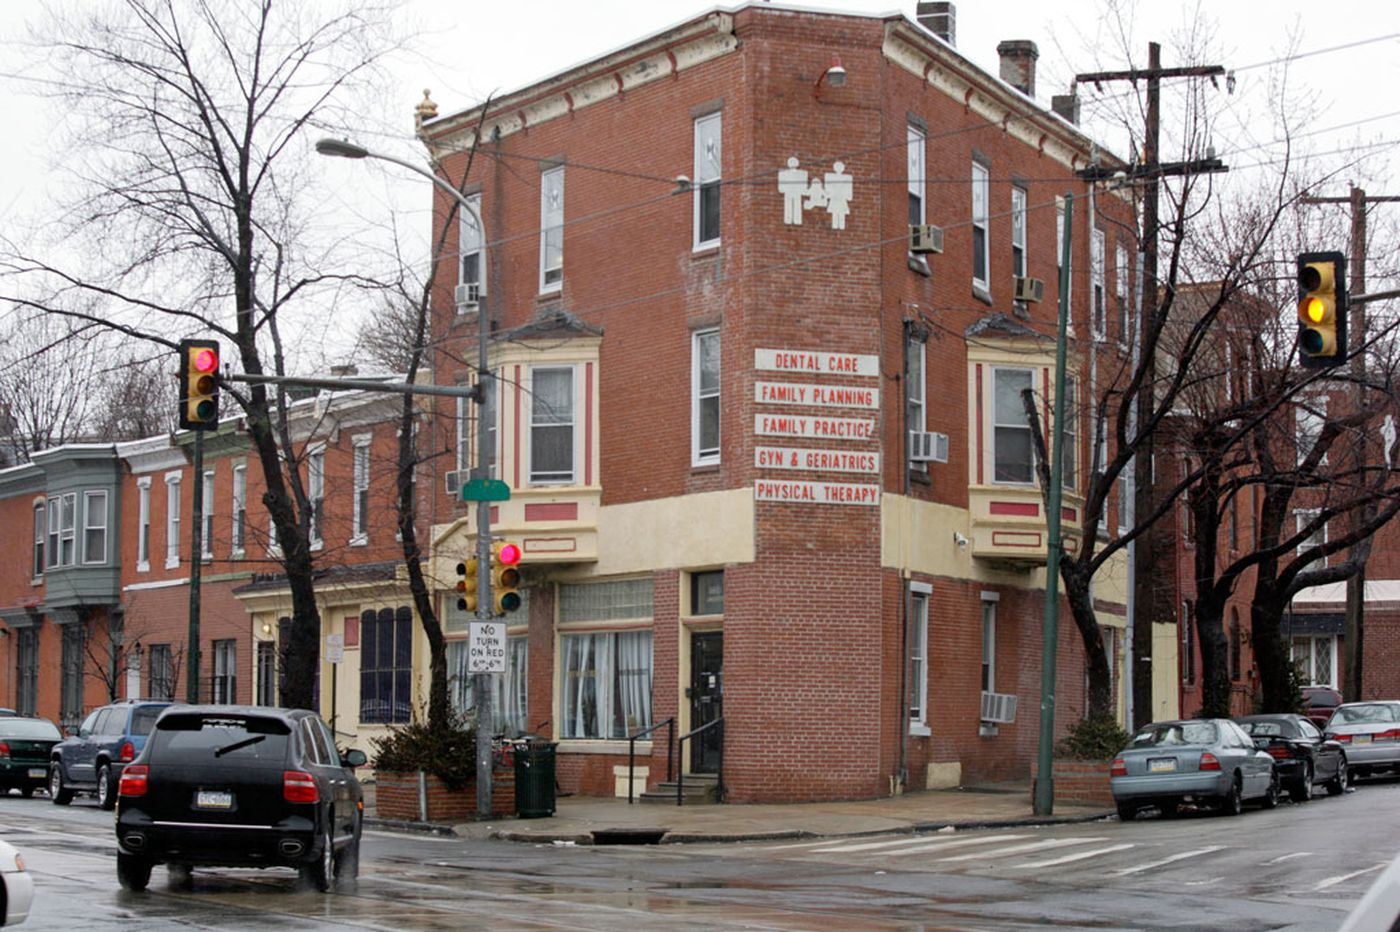 Pa. lists violations at Gosnell's abortion clinic